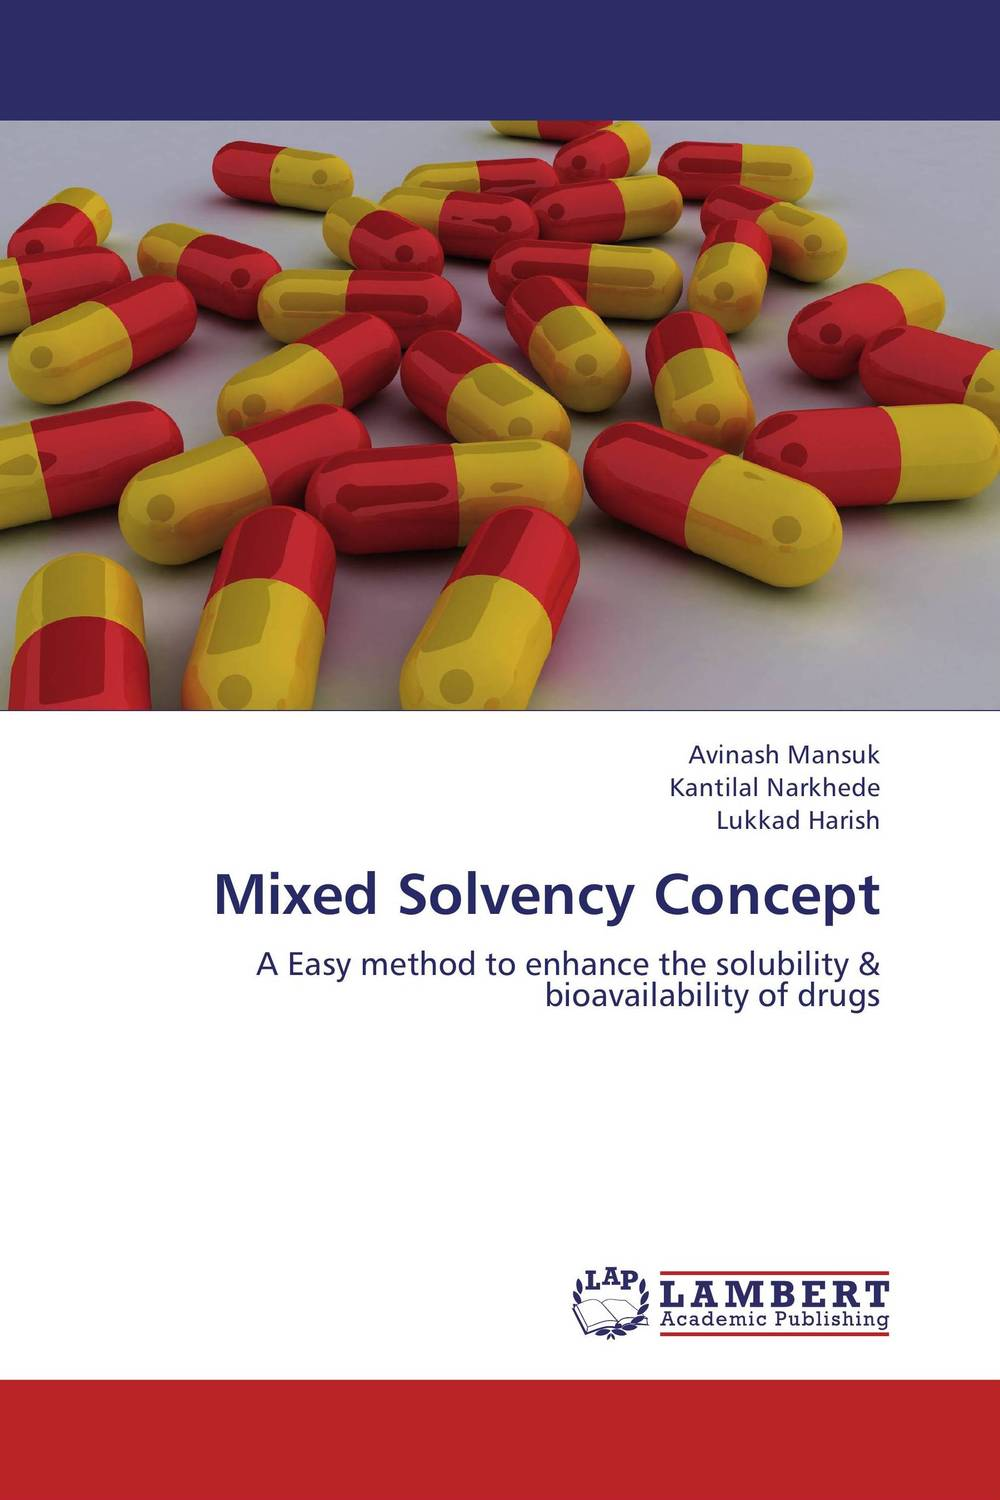 Mixed Solvency Concept formulation and evaluation of microspheres by mixed solvency concept